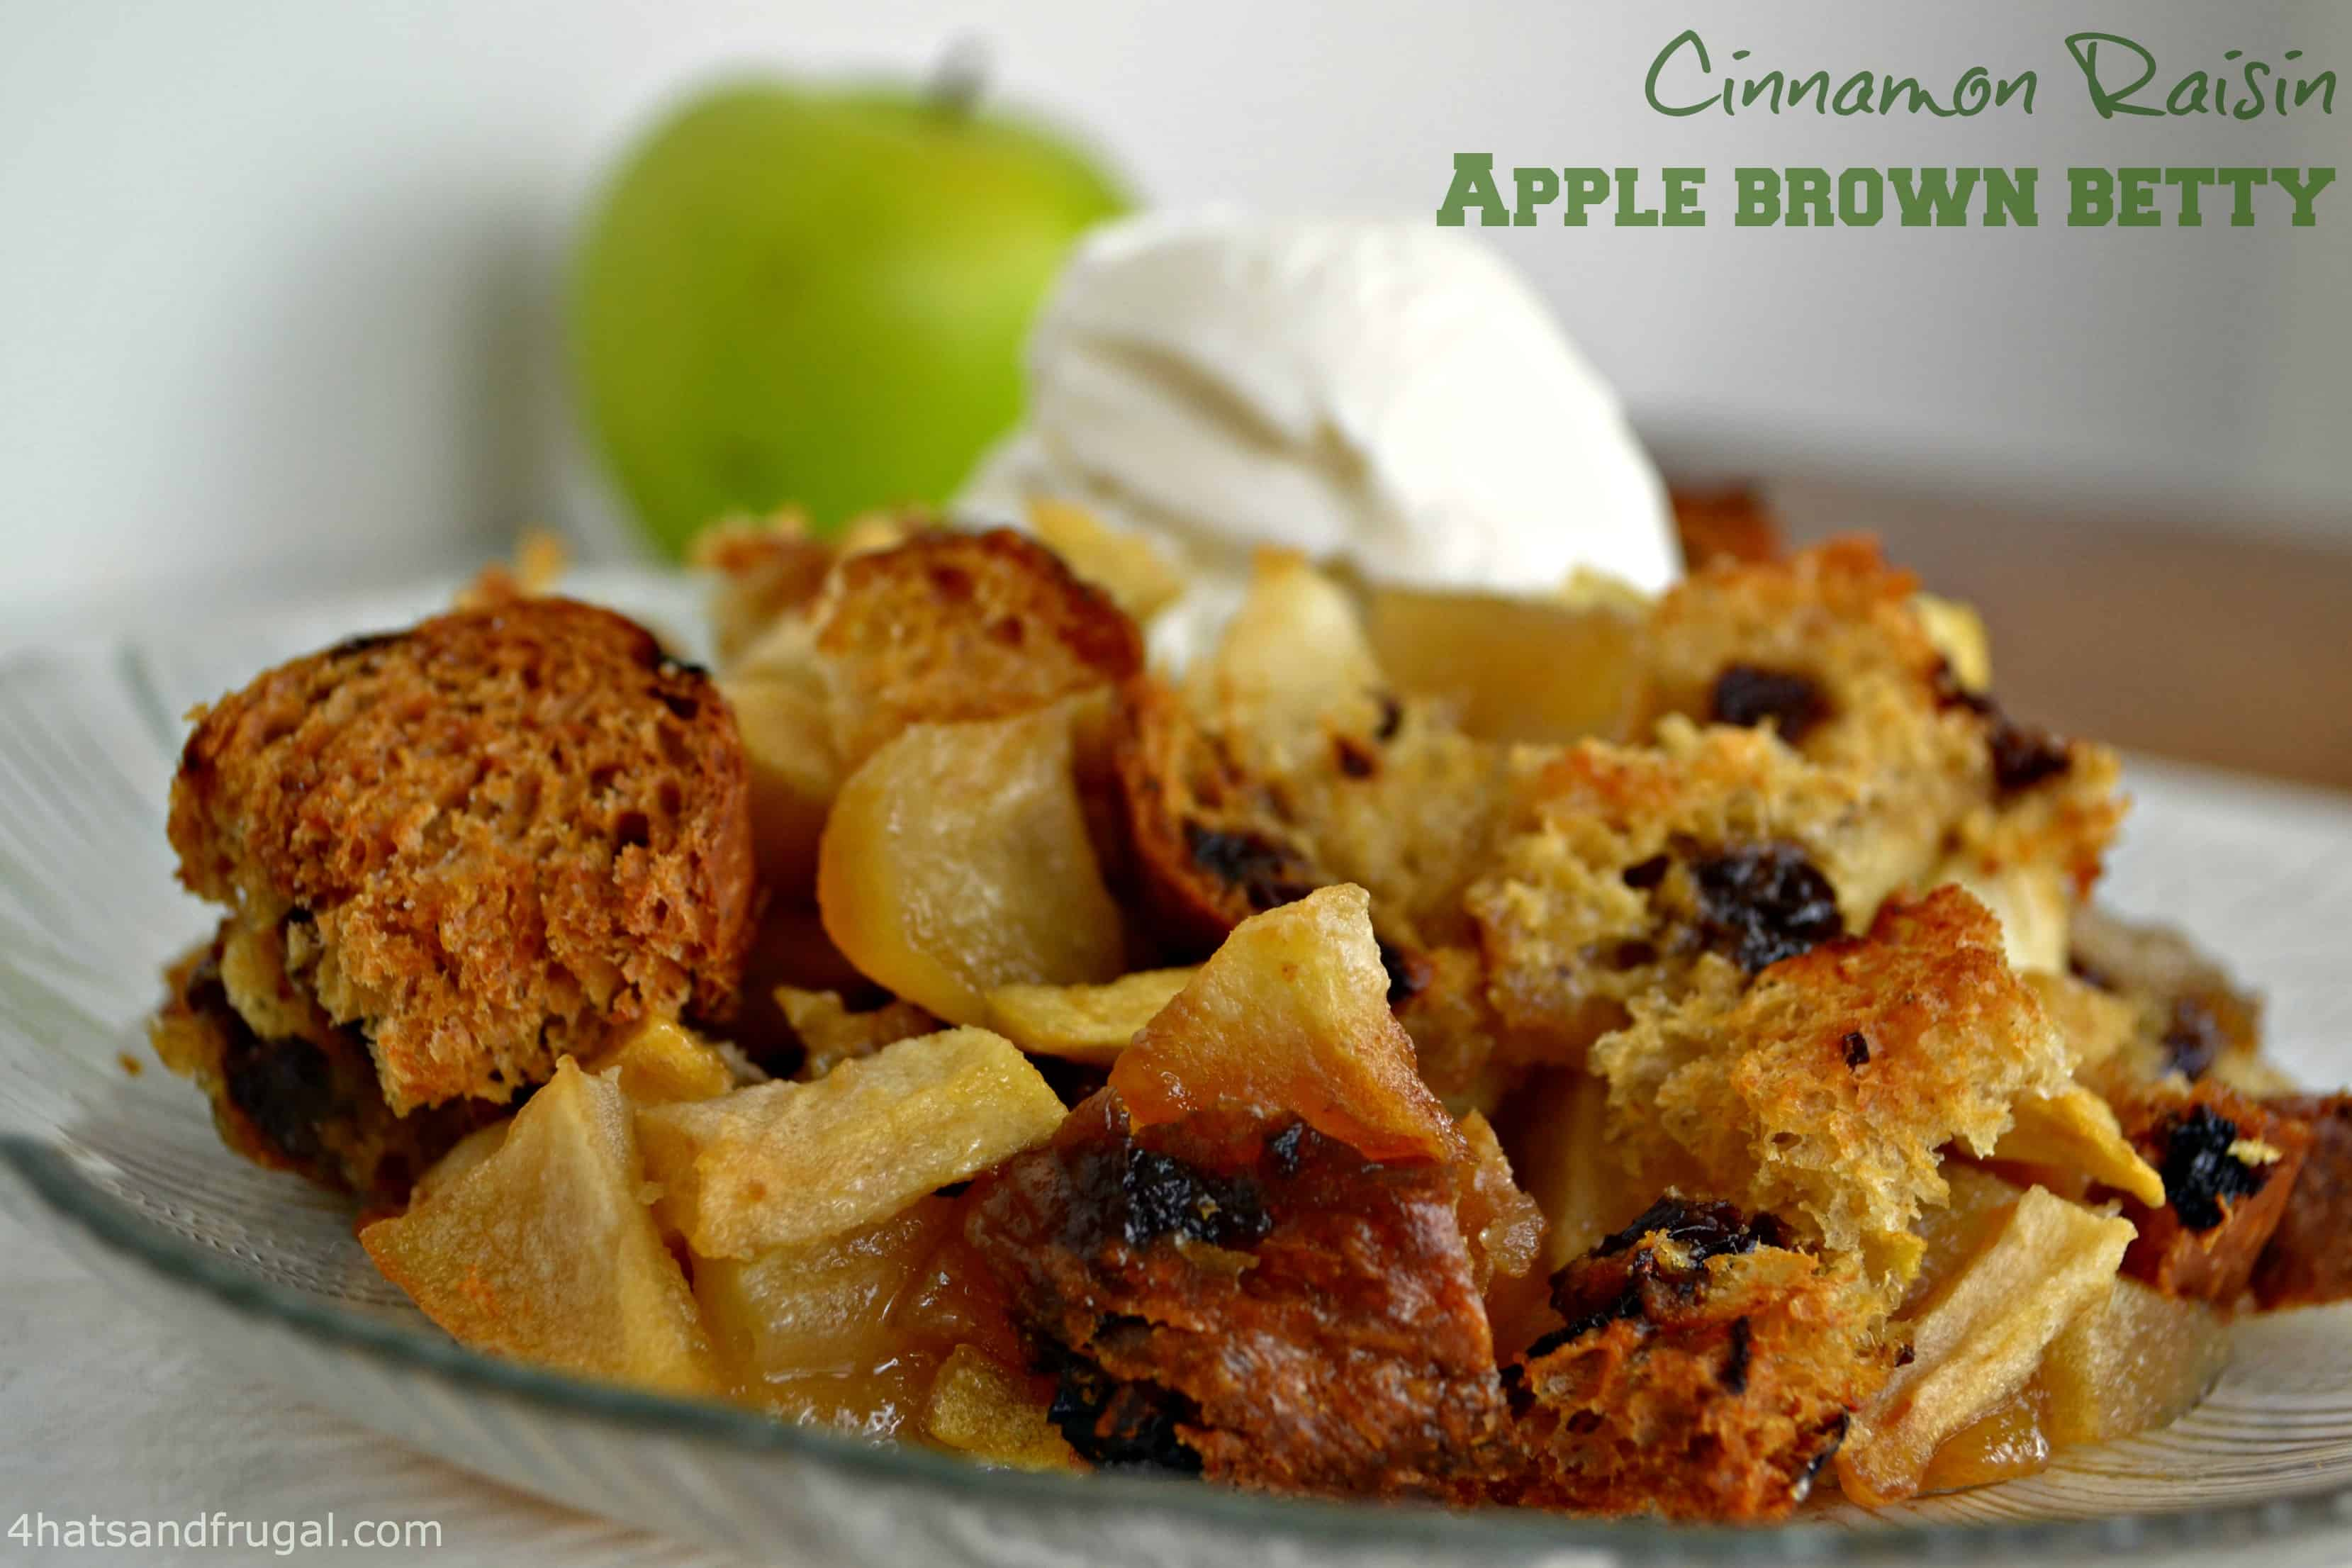 betty apple brown betty apple brown blackberry and apple brown betty ...